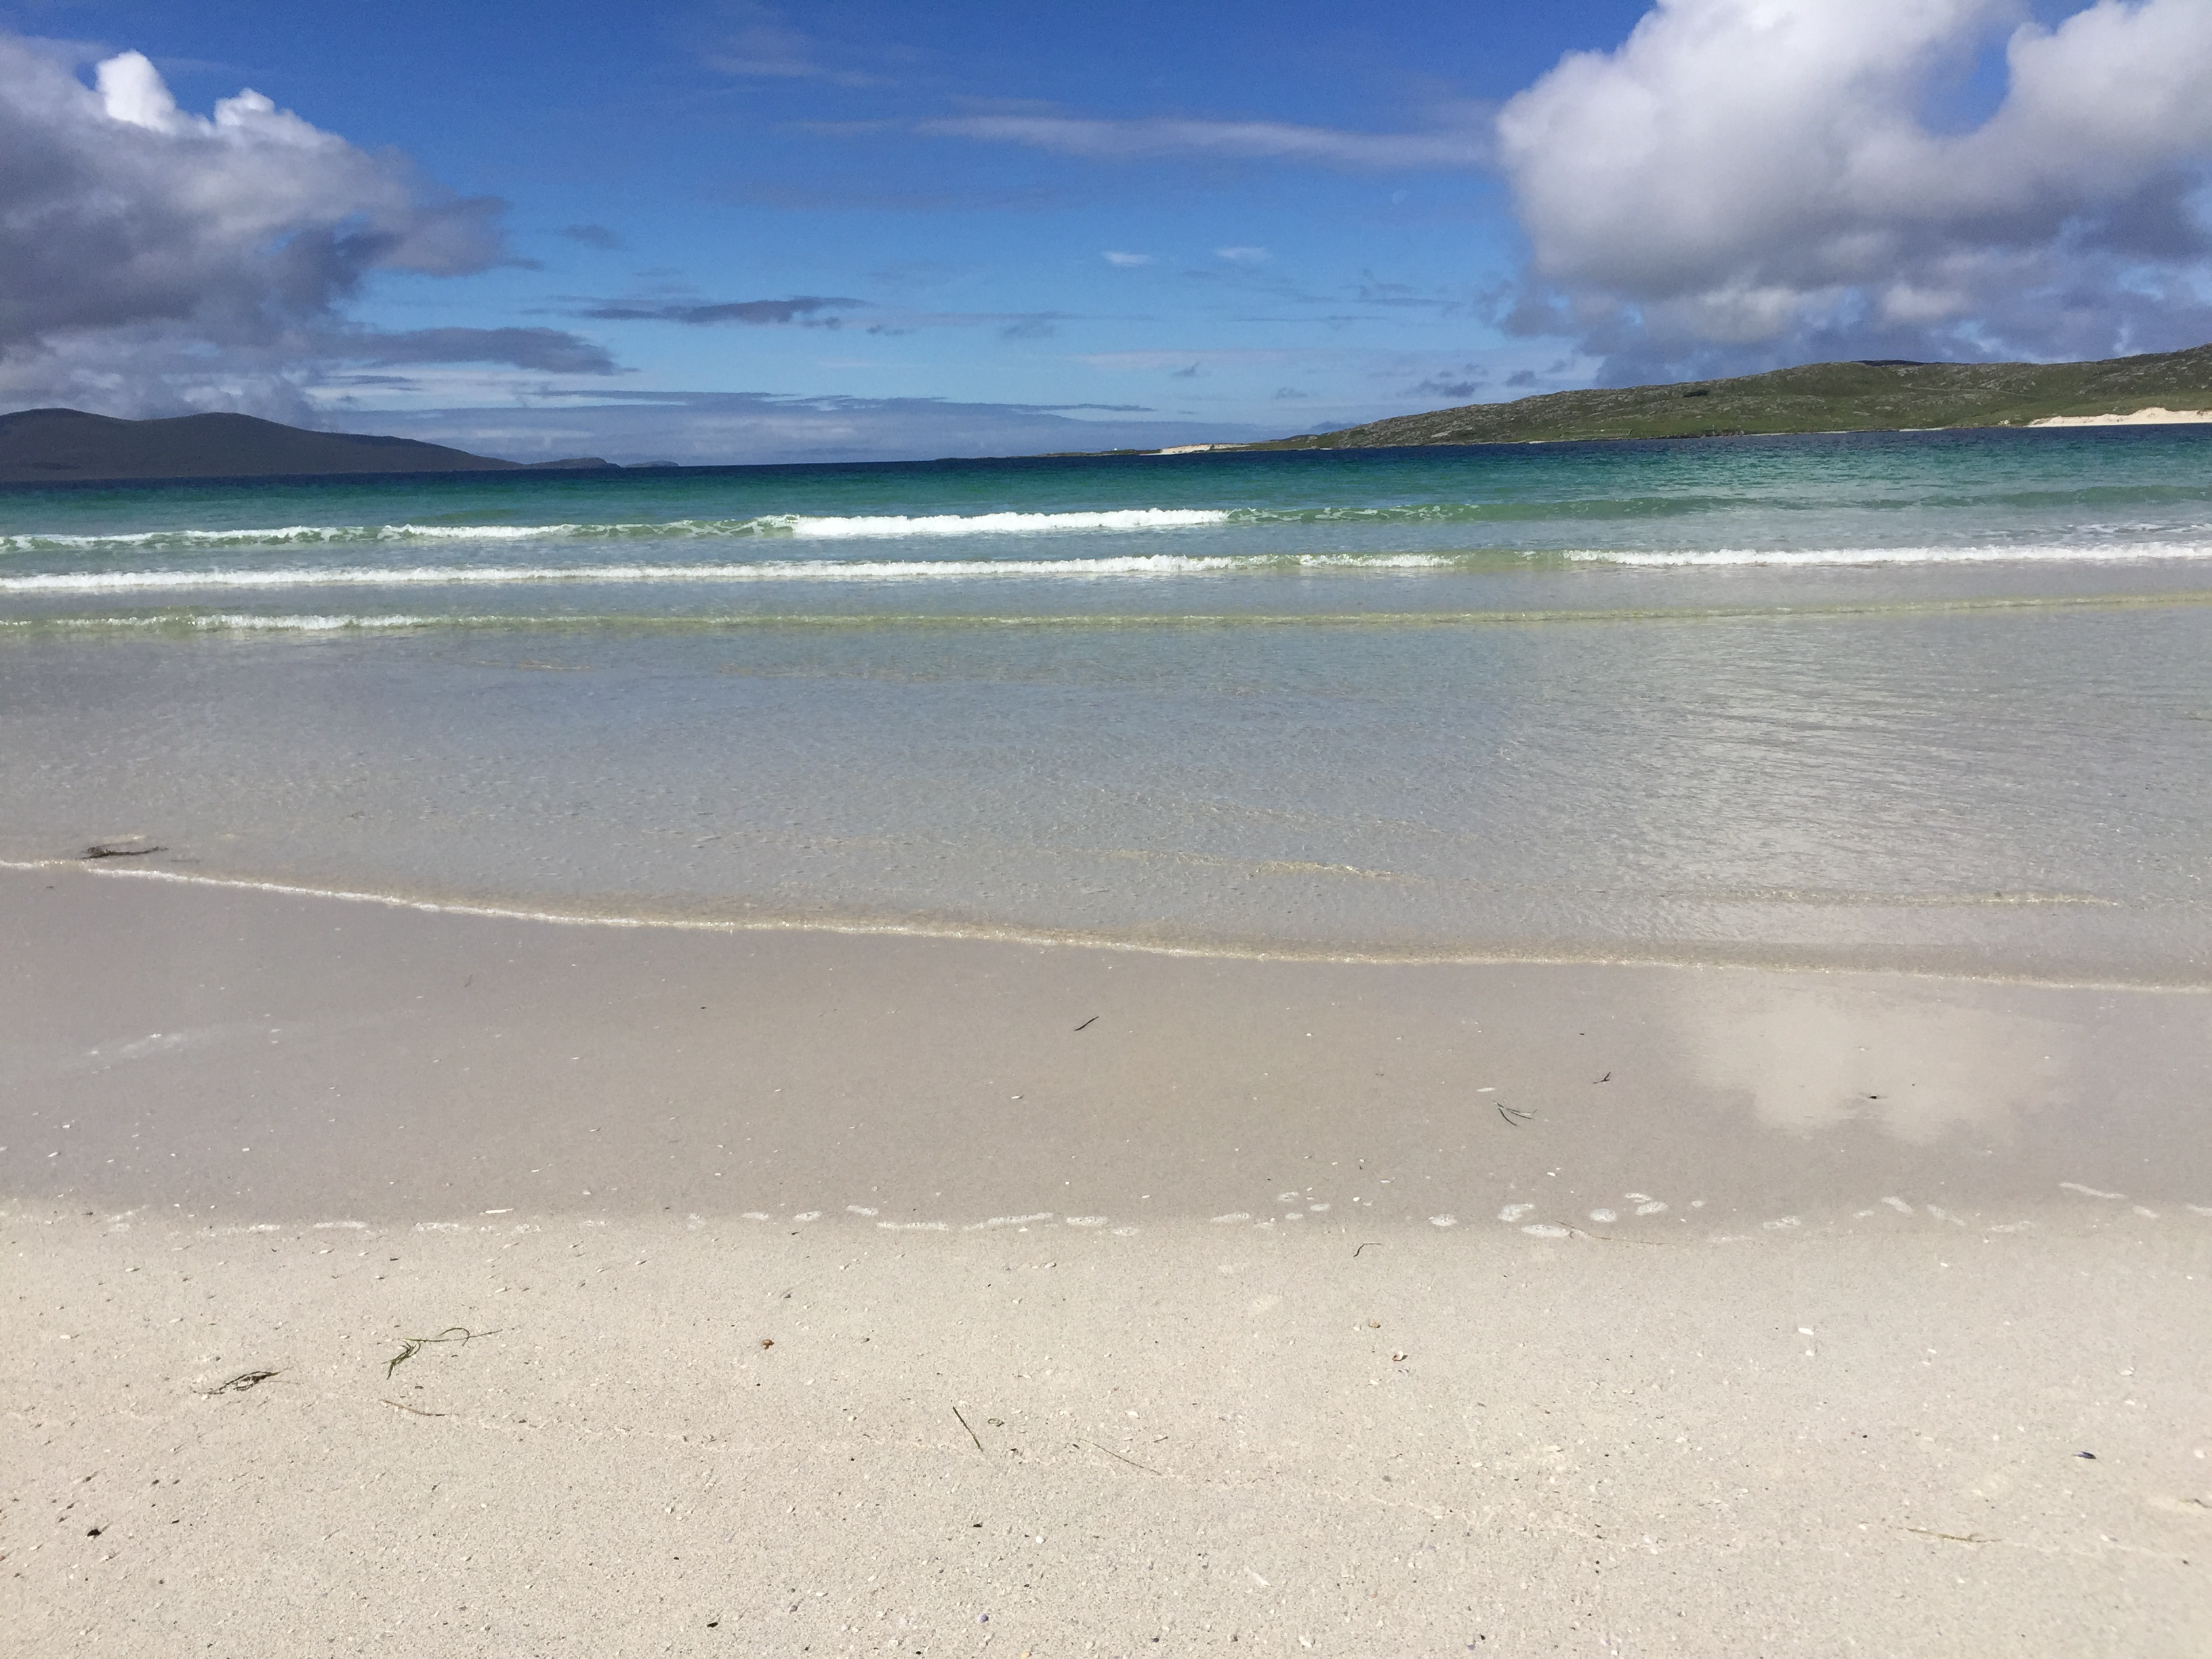 Luskentyre beach in Harris, Outer Hebrides